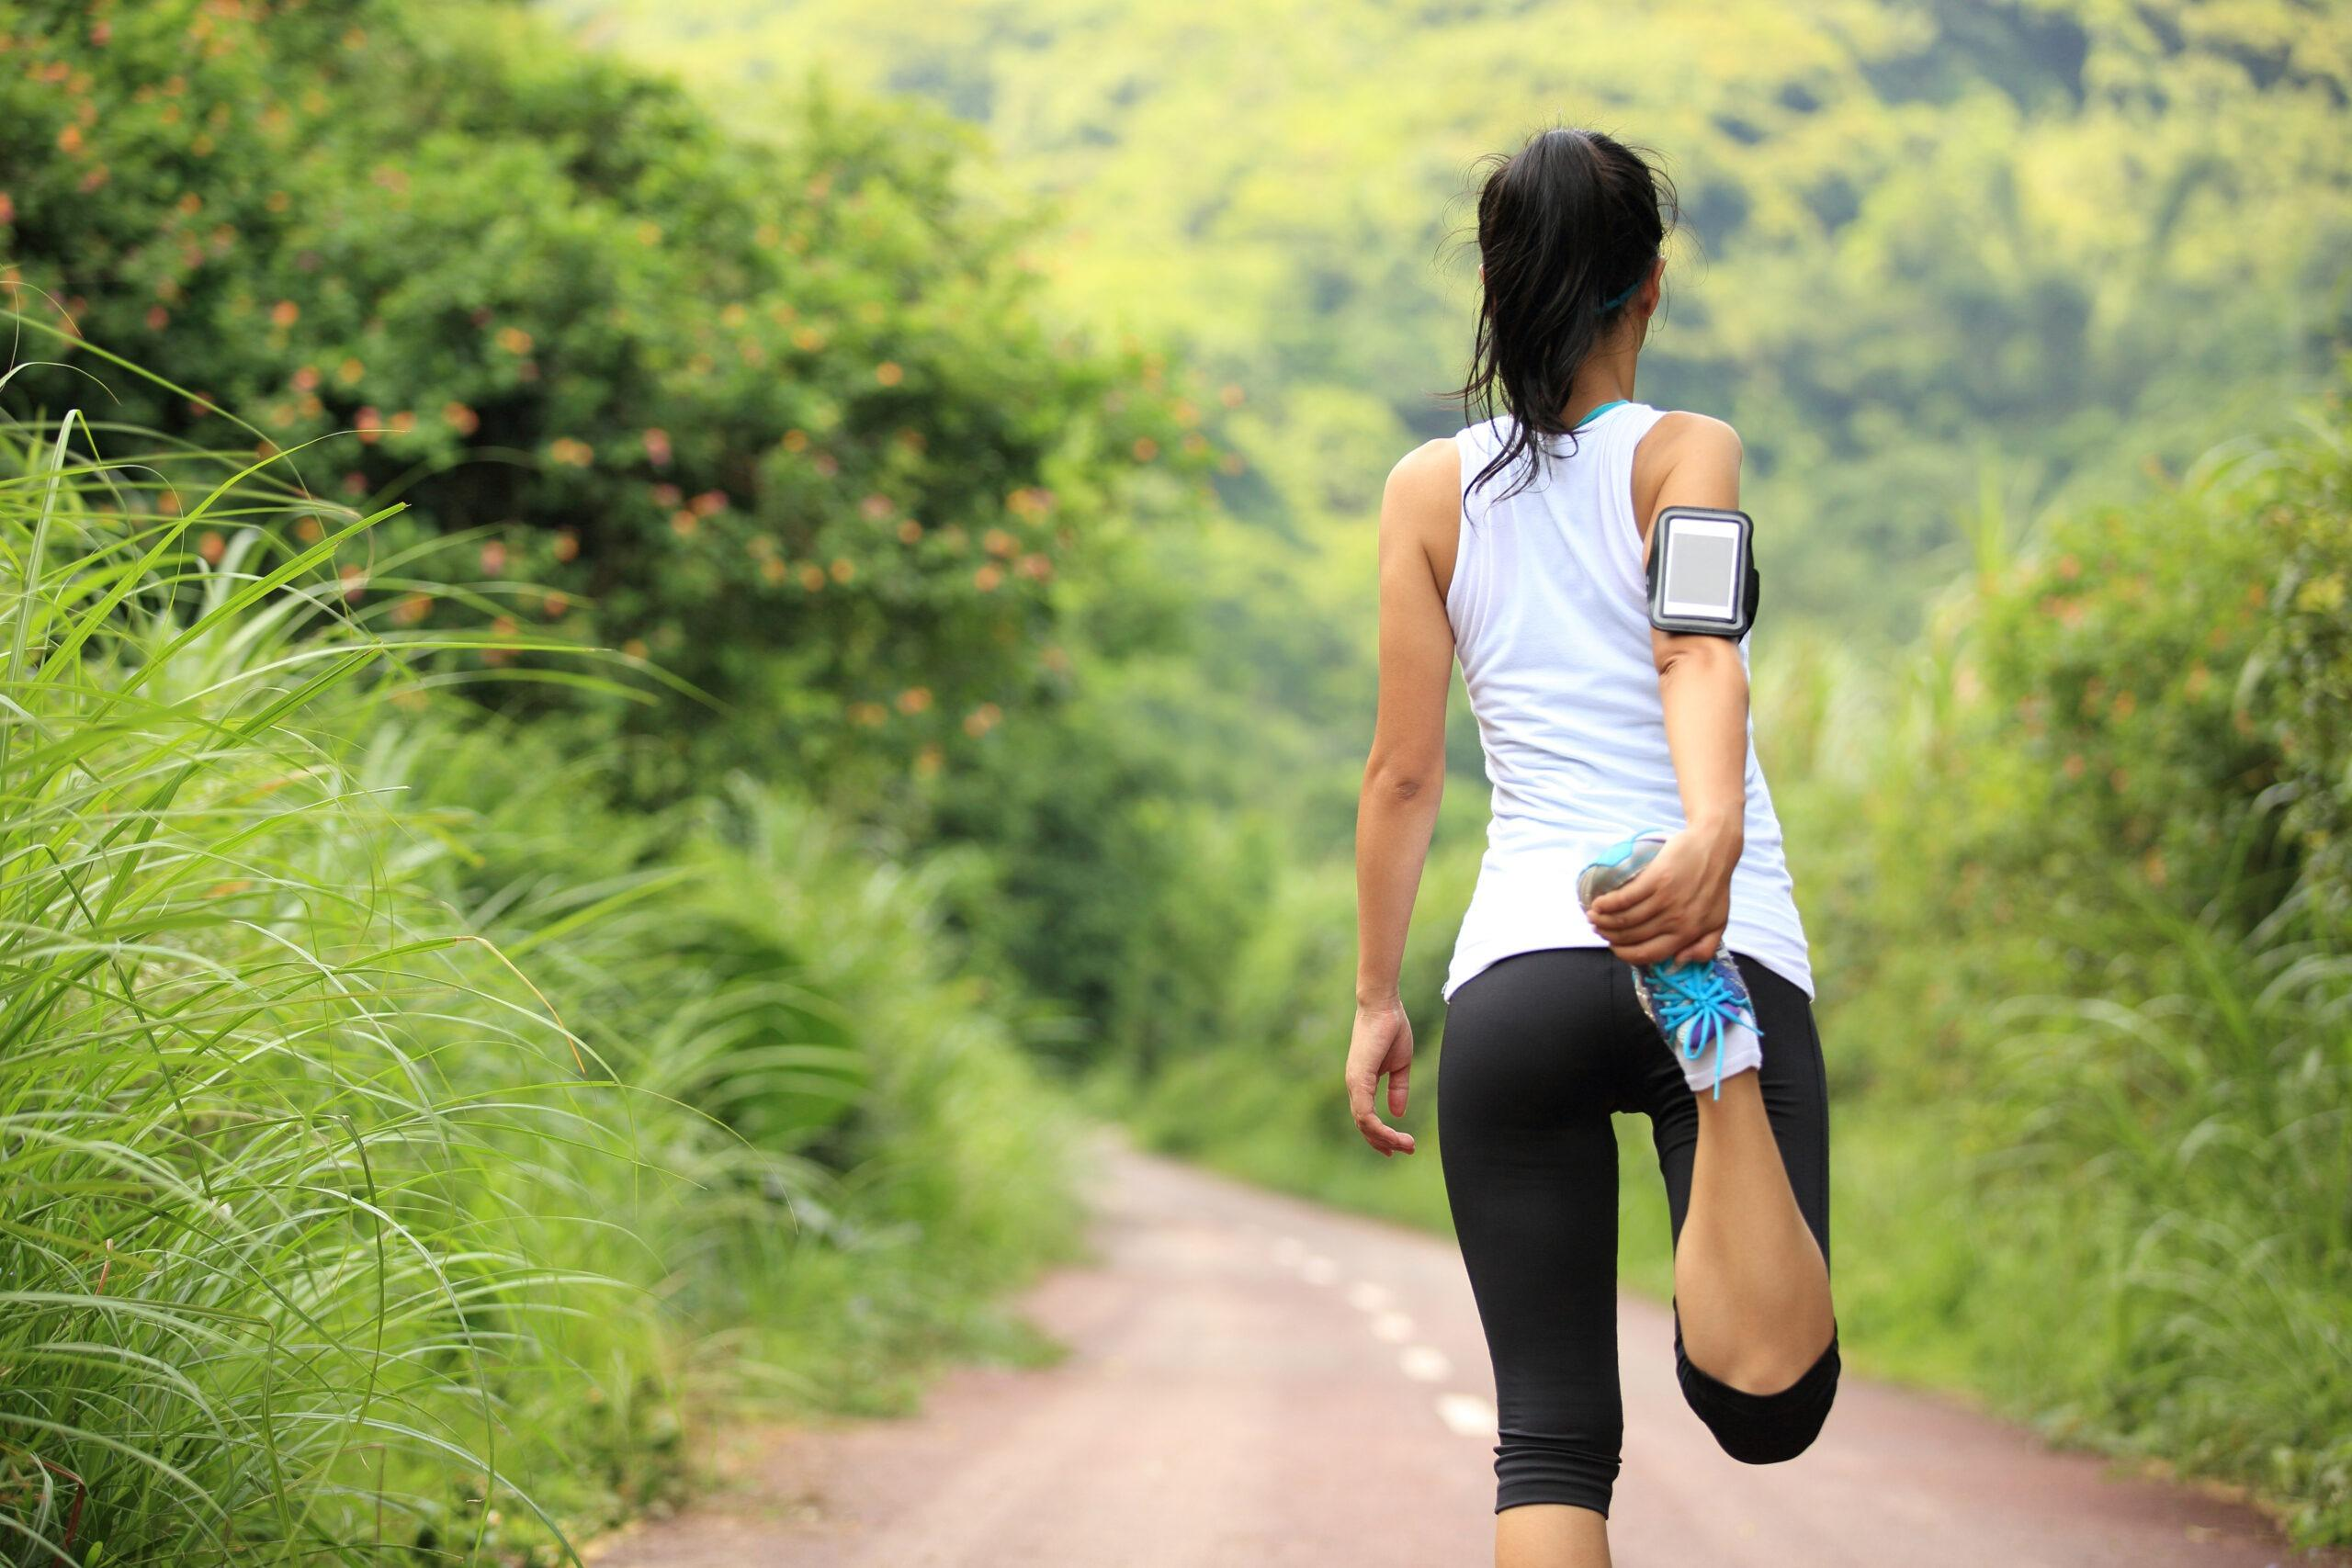 Read more about the article HOW TO FIND THE MENTAL STRENGTH NEEDED TO RUN